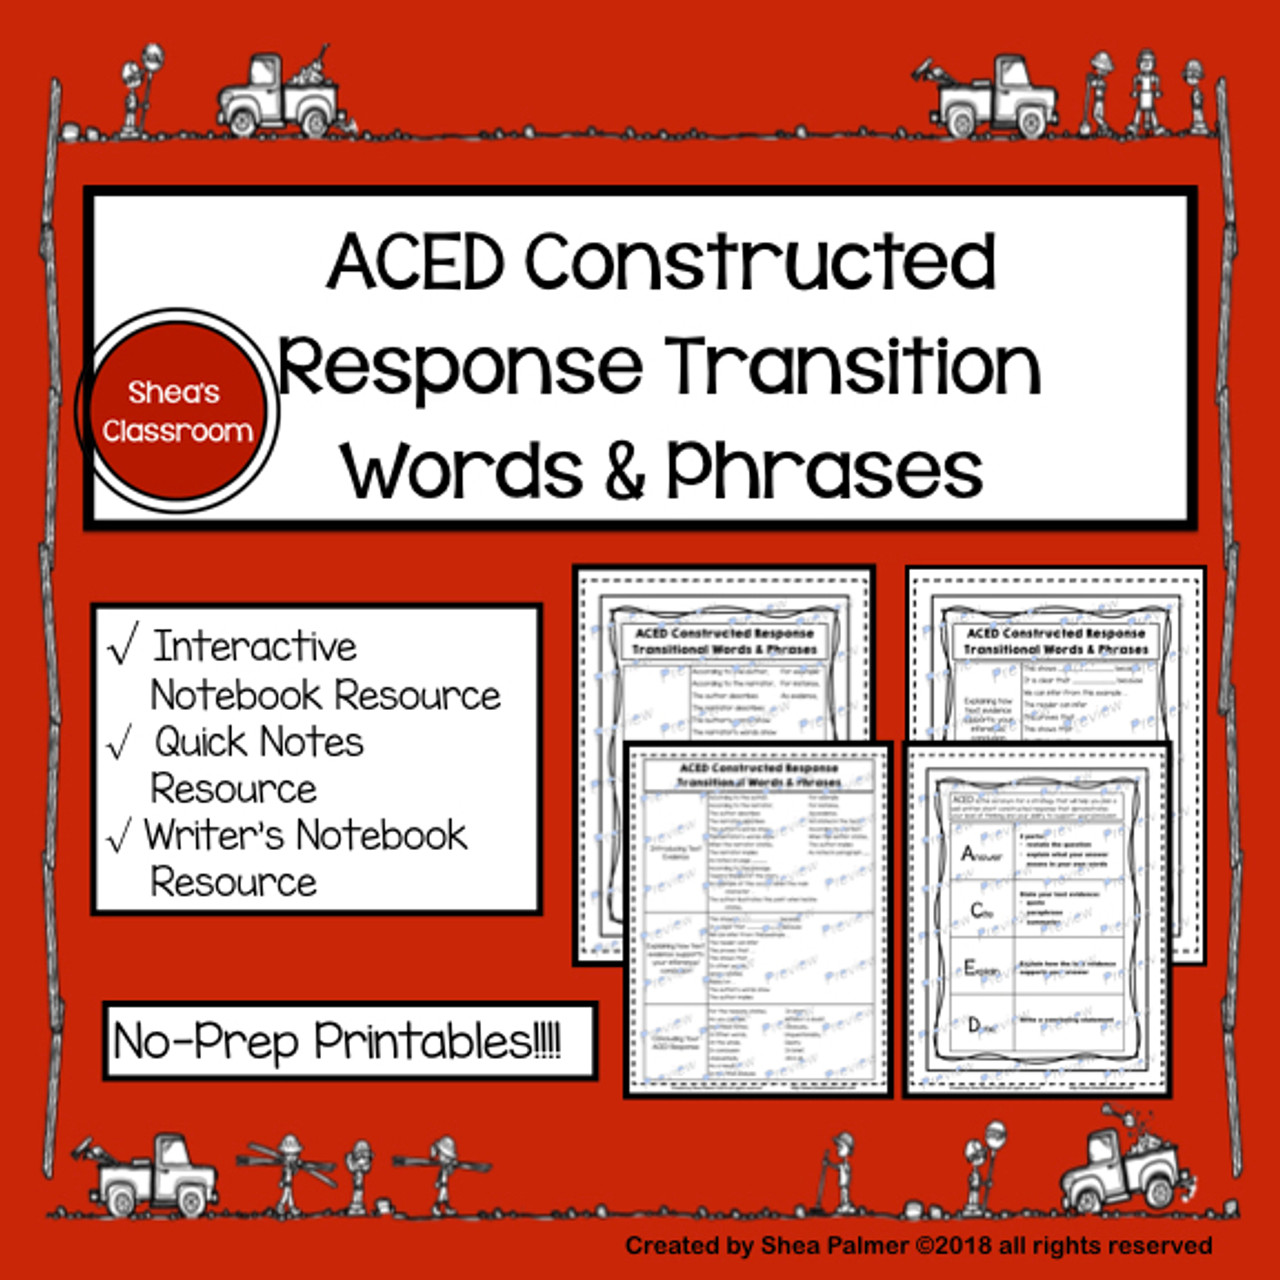 Short Constructed Response ACED Acronym Guided Notes Resource Pages